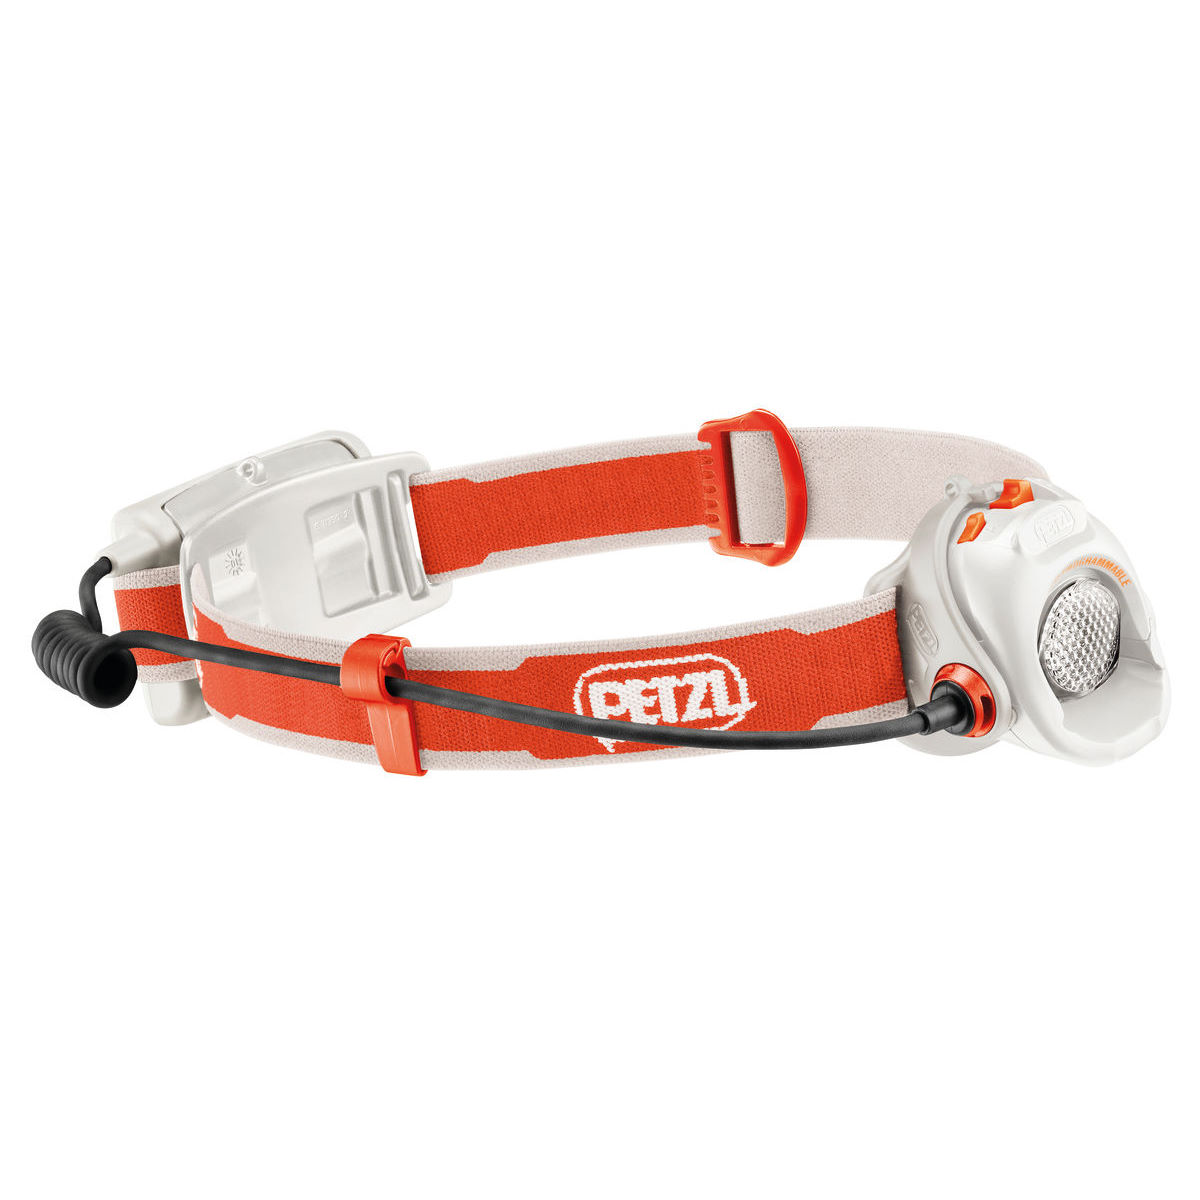 Lampe frontale Petzl MYO RXP - one size Coral Lampes frontales